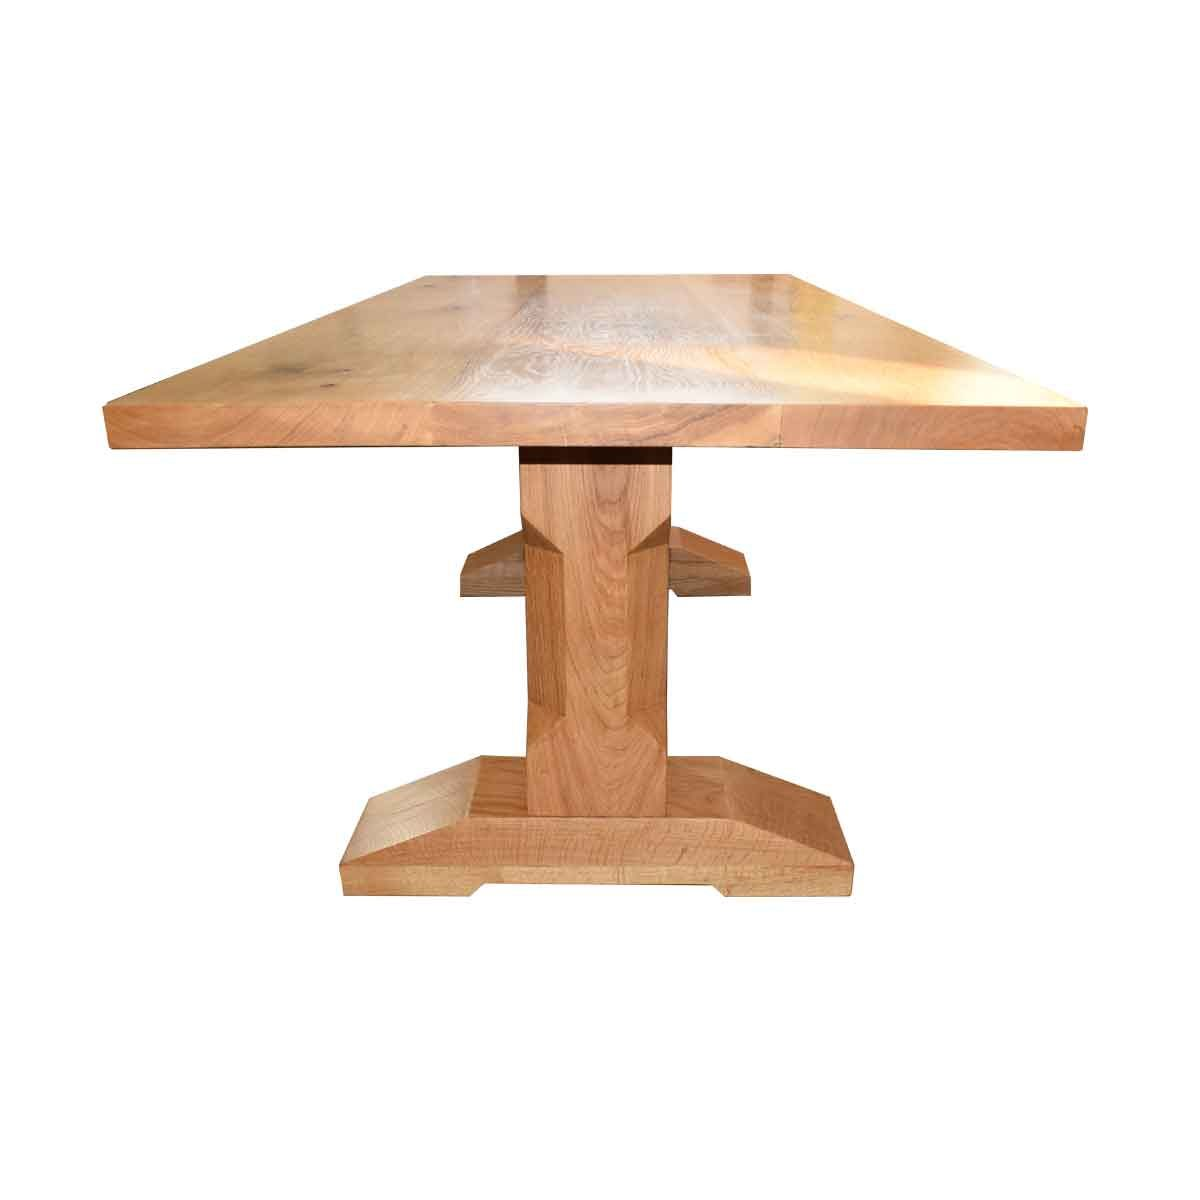 Bespoke Contemporary Chamfered leg Table Handcrafted in Suffolk